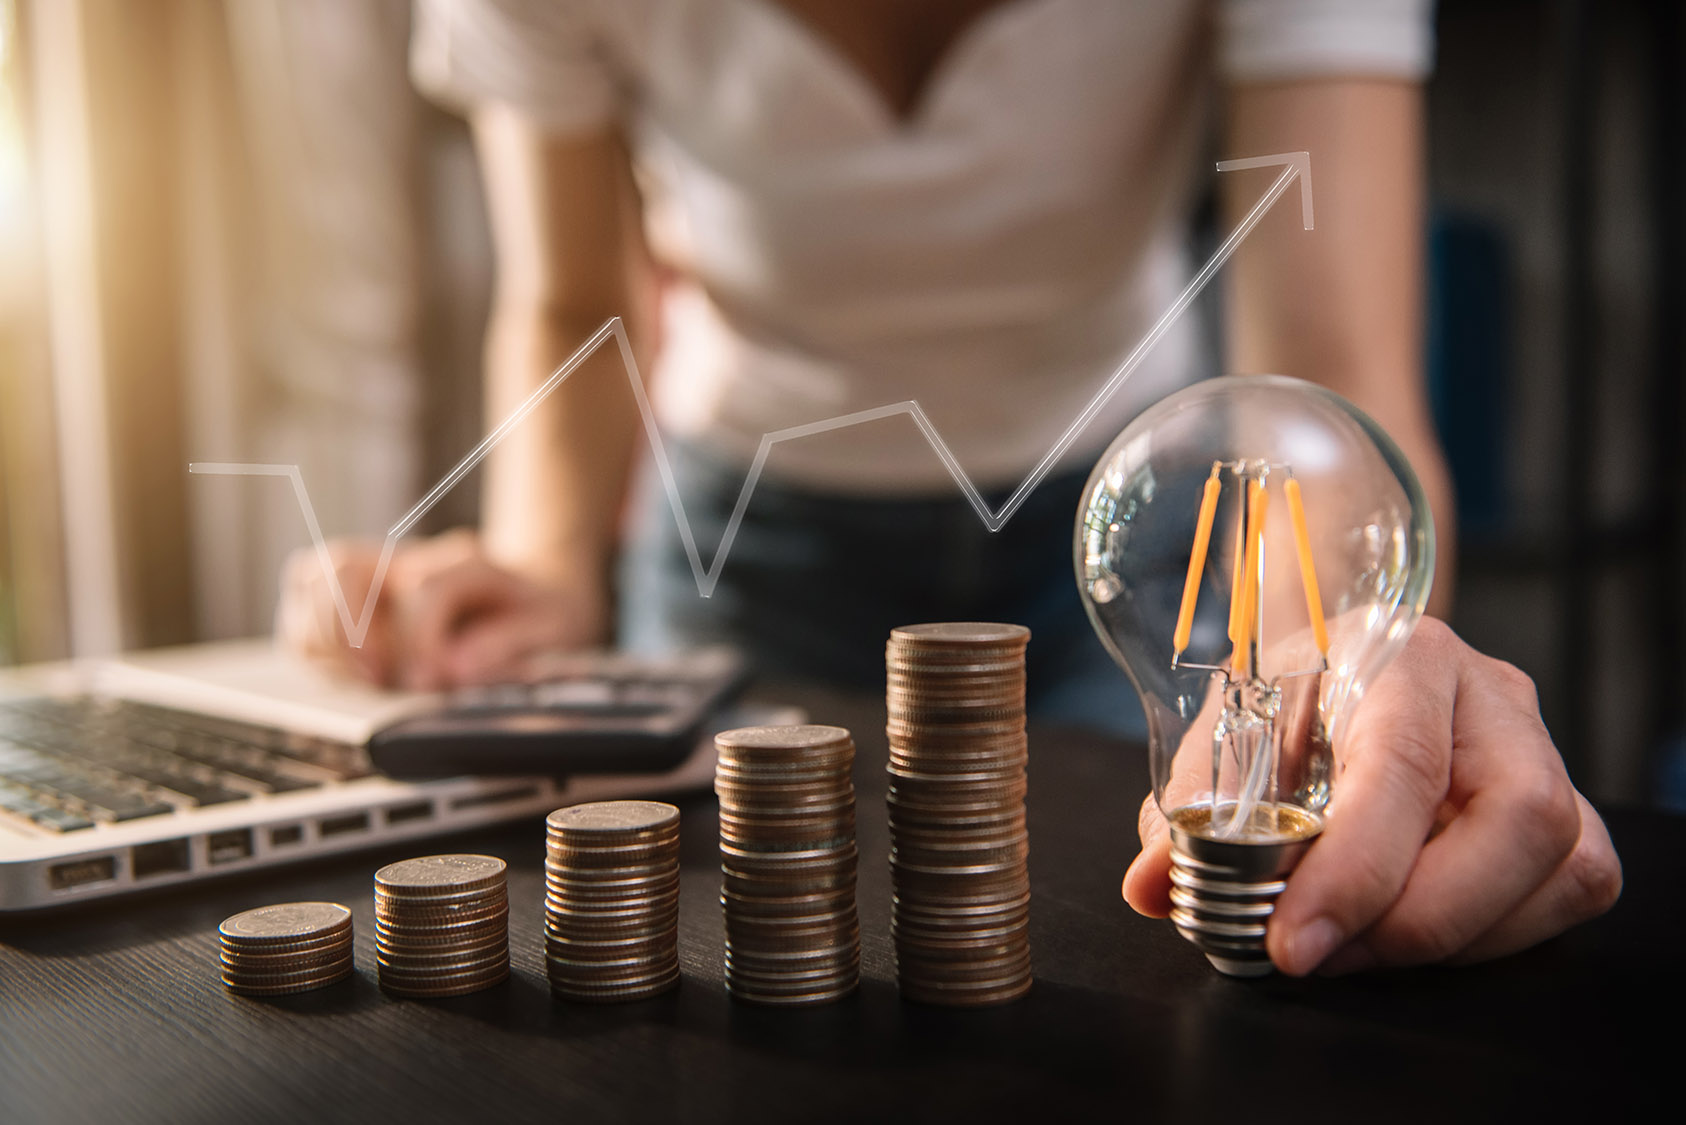 Photo of a person holding an LED lightbulb with columns of coins stacked and a laptop and calculator in the background